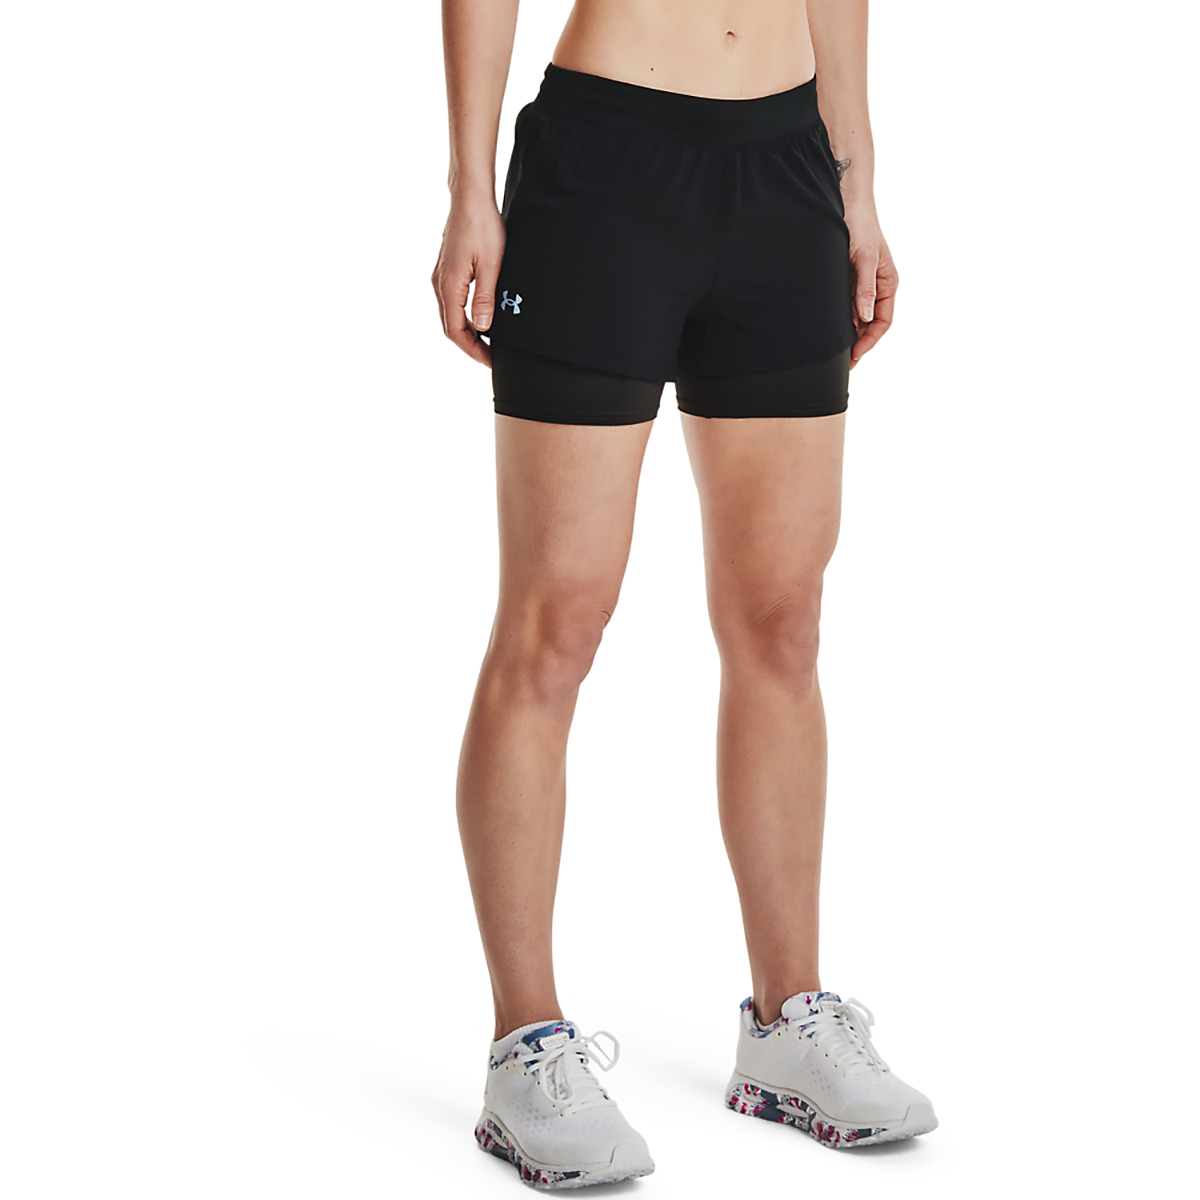 Women's Under Armour Isochill Run 2 in 1 Short - Color: Black/Black - Size: XS, Black/Black, large, image 1